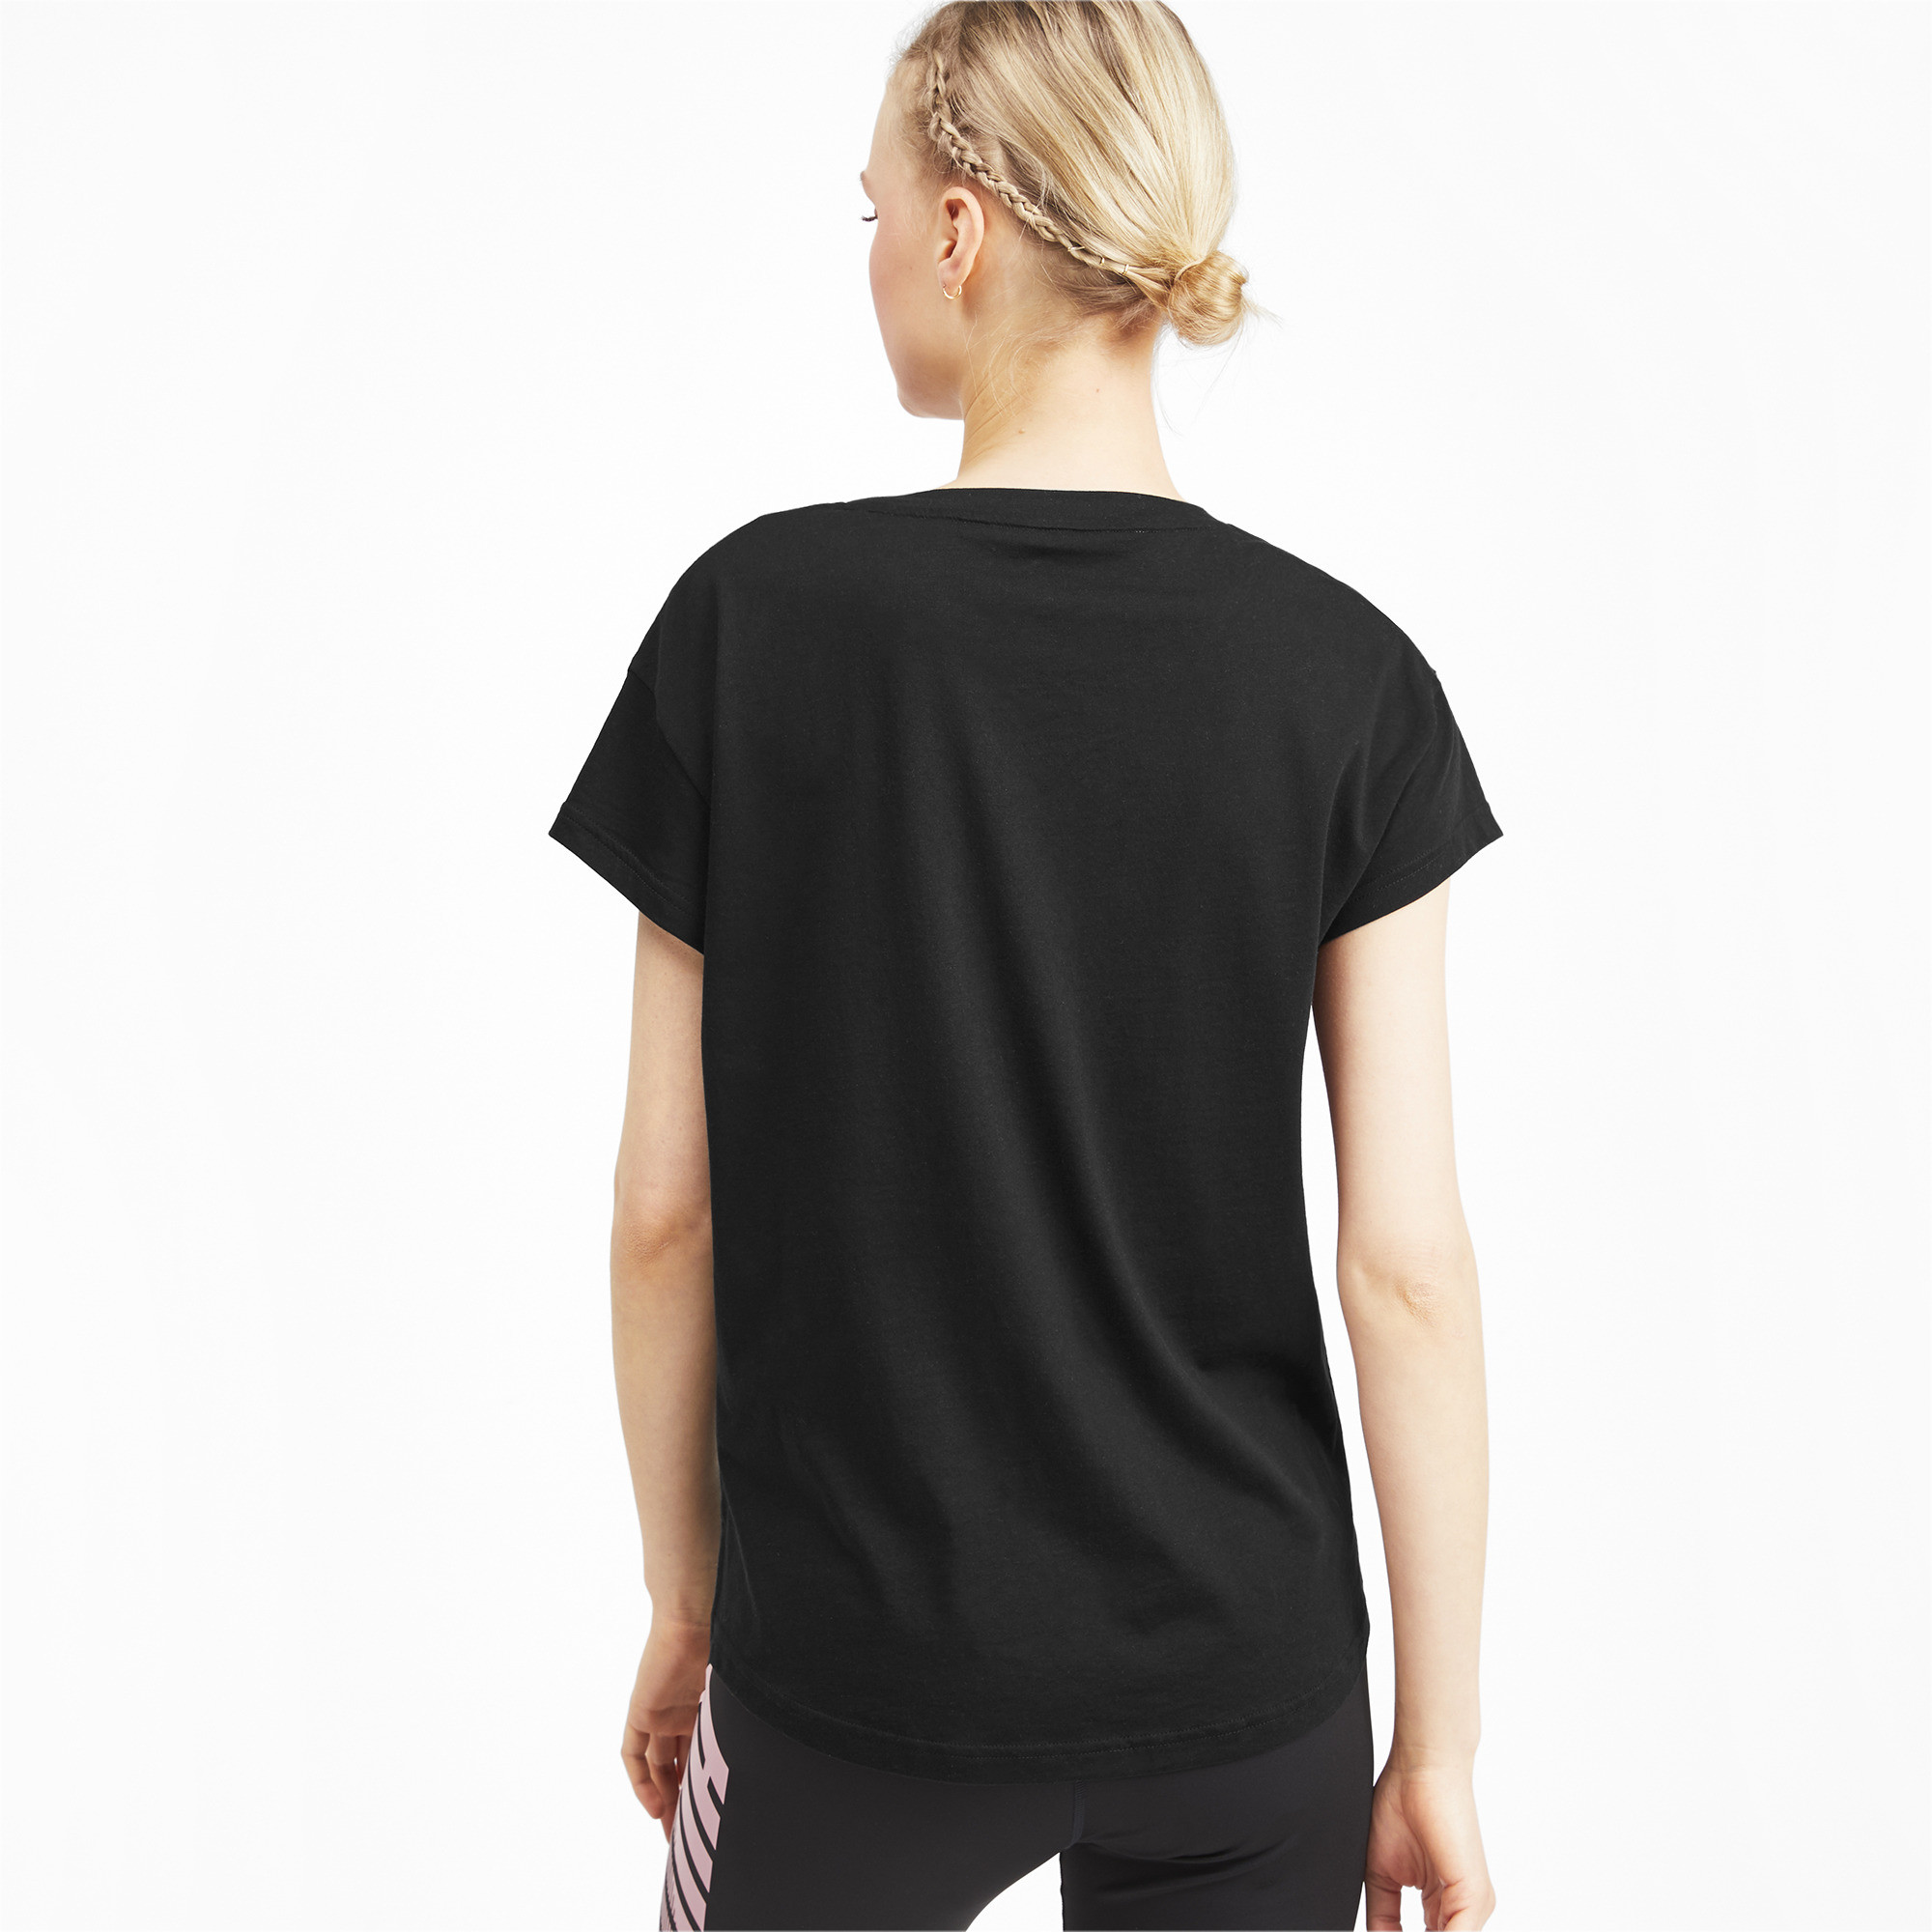 PUMA-Modern-Sports-Women-039-s-Graphic-Tee-Women-Tee-Basics thumbnail 5